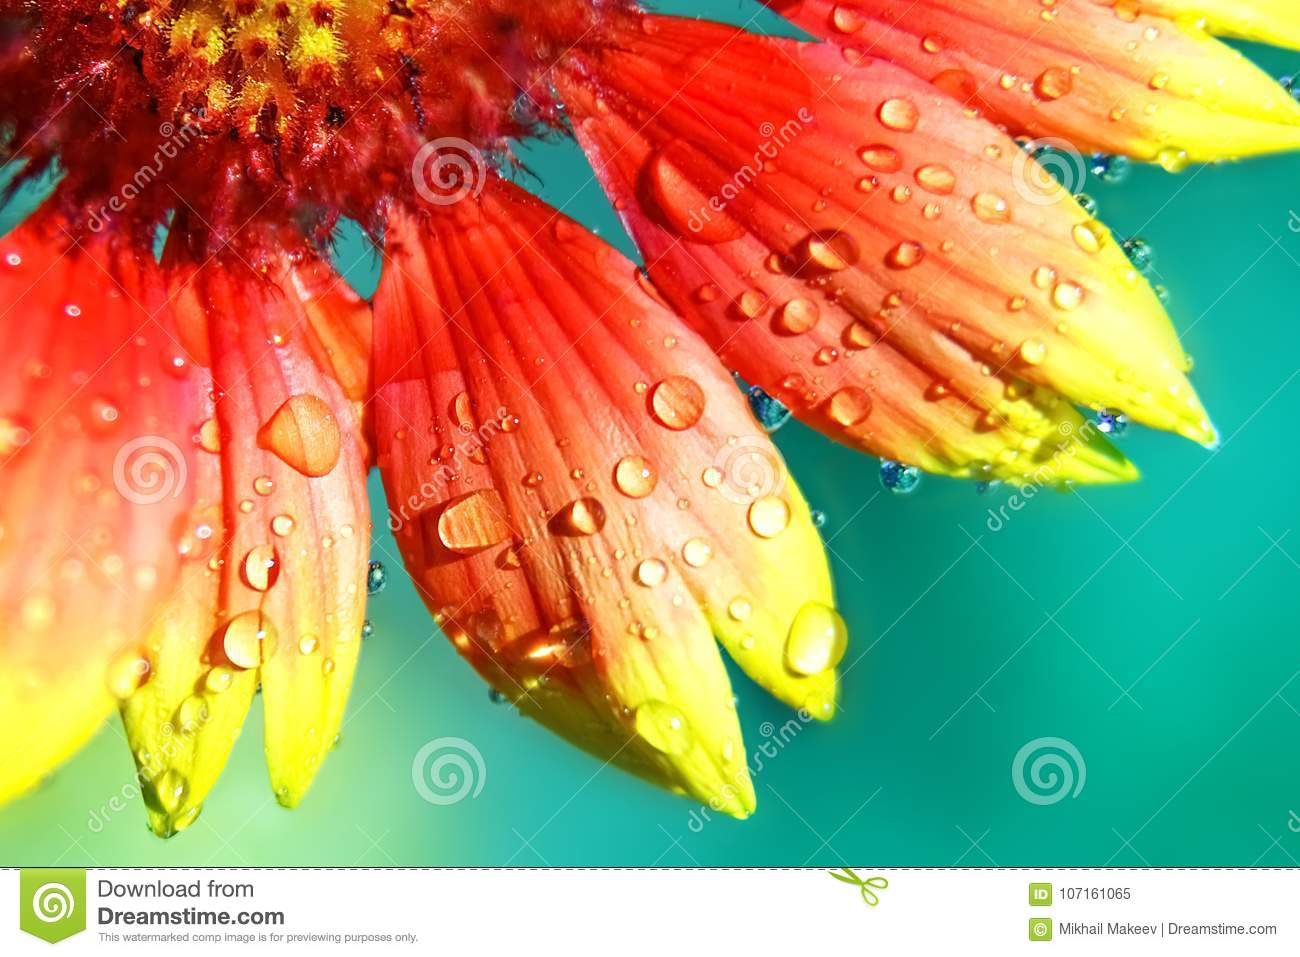 Yellow and red petals of flowers in droplets of water natural download yellow and red petals of flowers in droplets of water natural floral background mightylinksfo